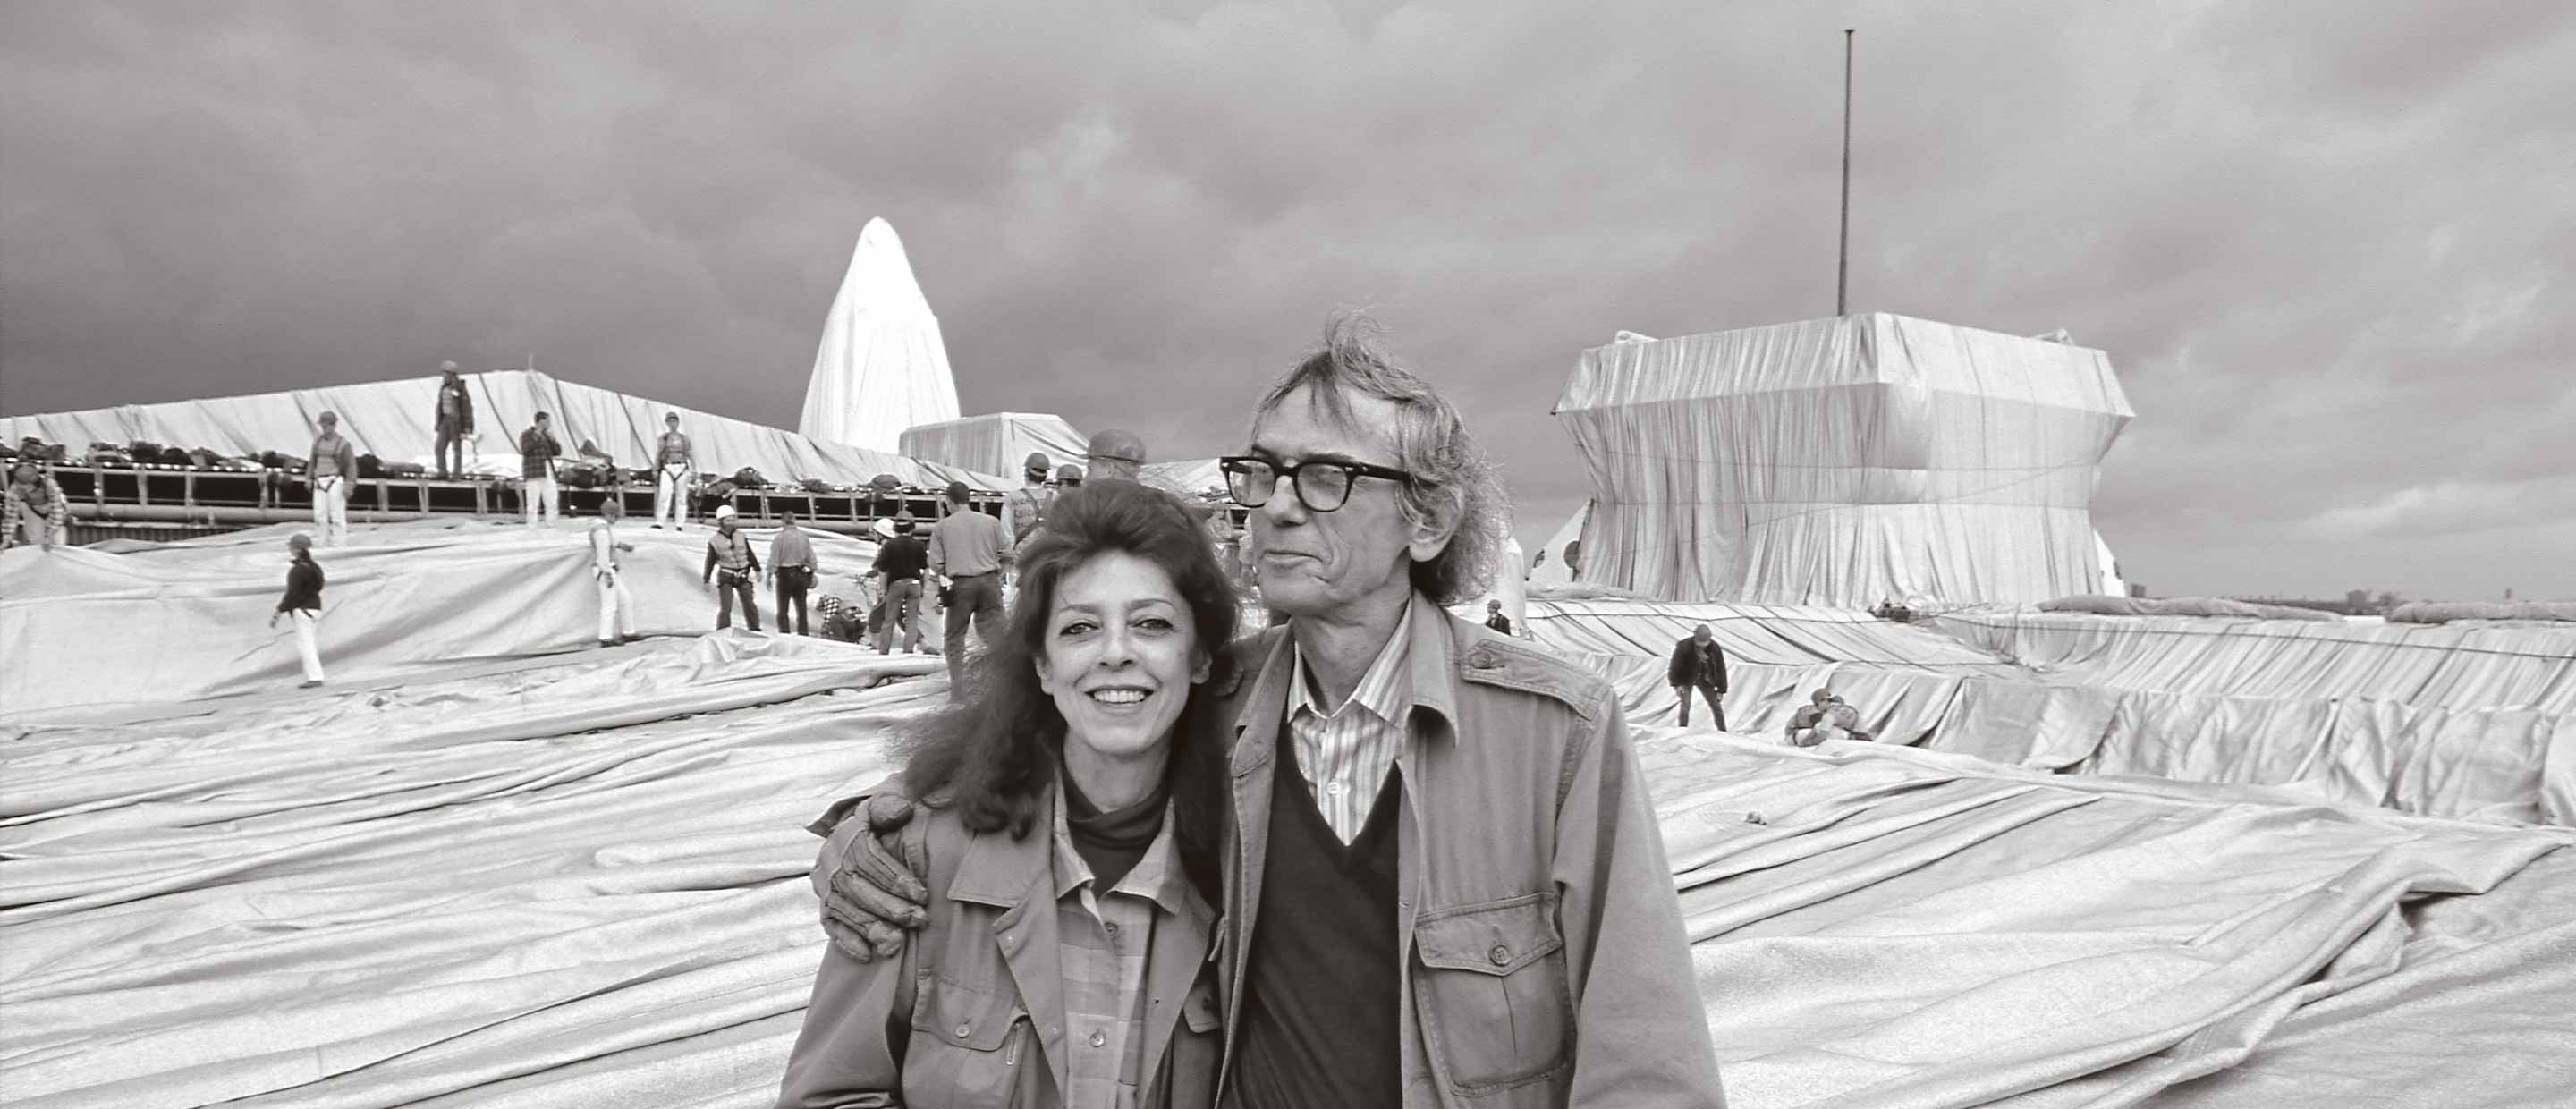 Celebrating Christo's legacy at the PalaisPopulaire